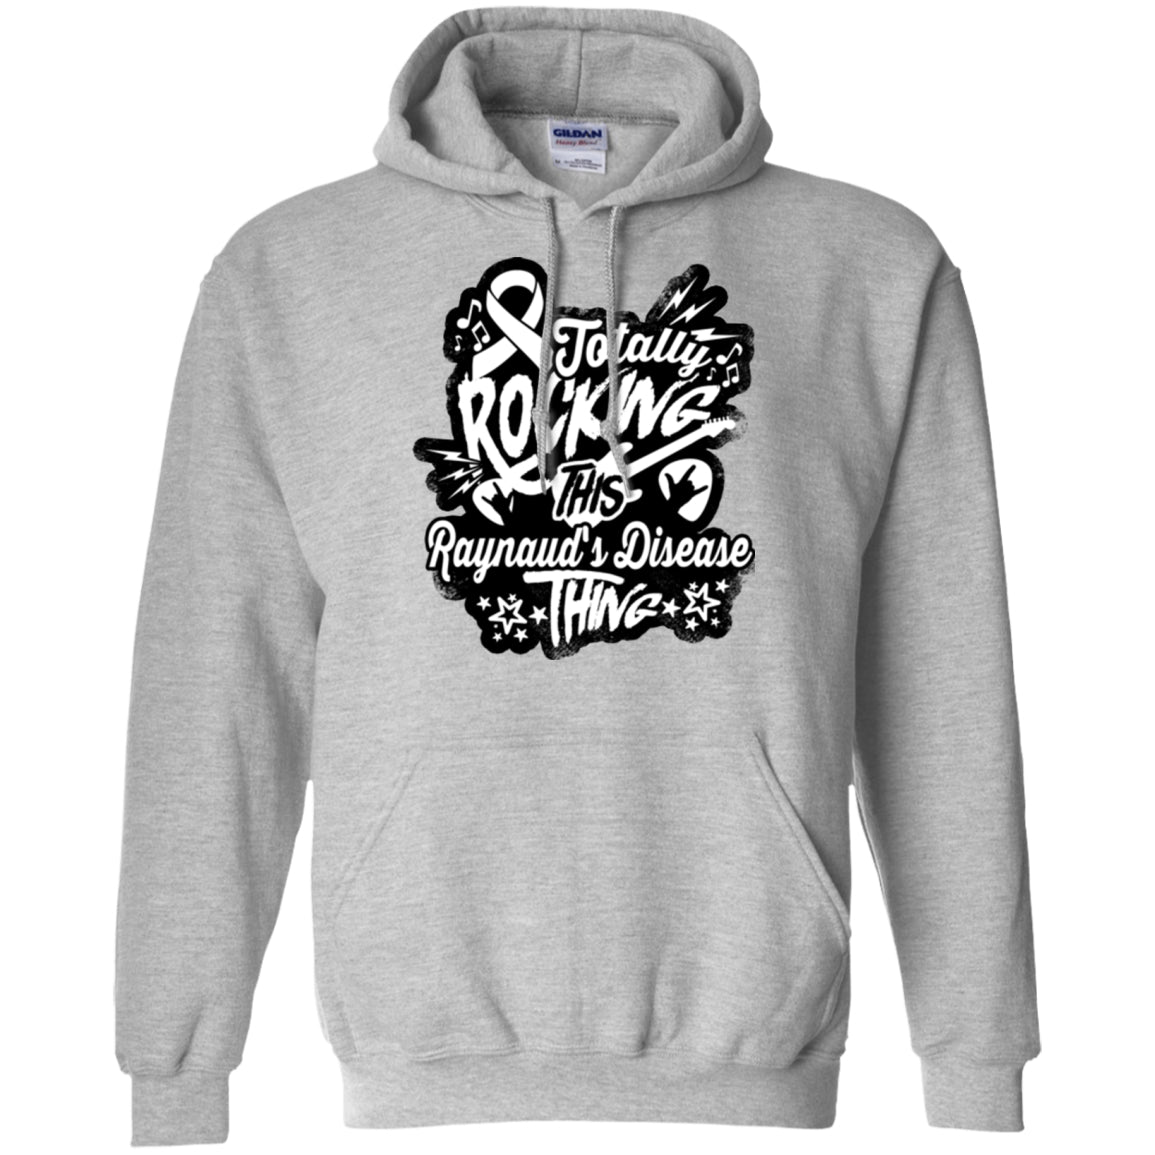 Rocking Raynaud's Disease Pullover Hoodie 8 oz. - The Unchargeables